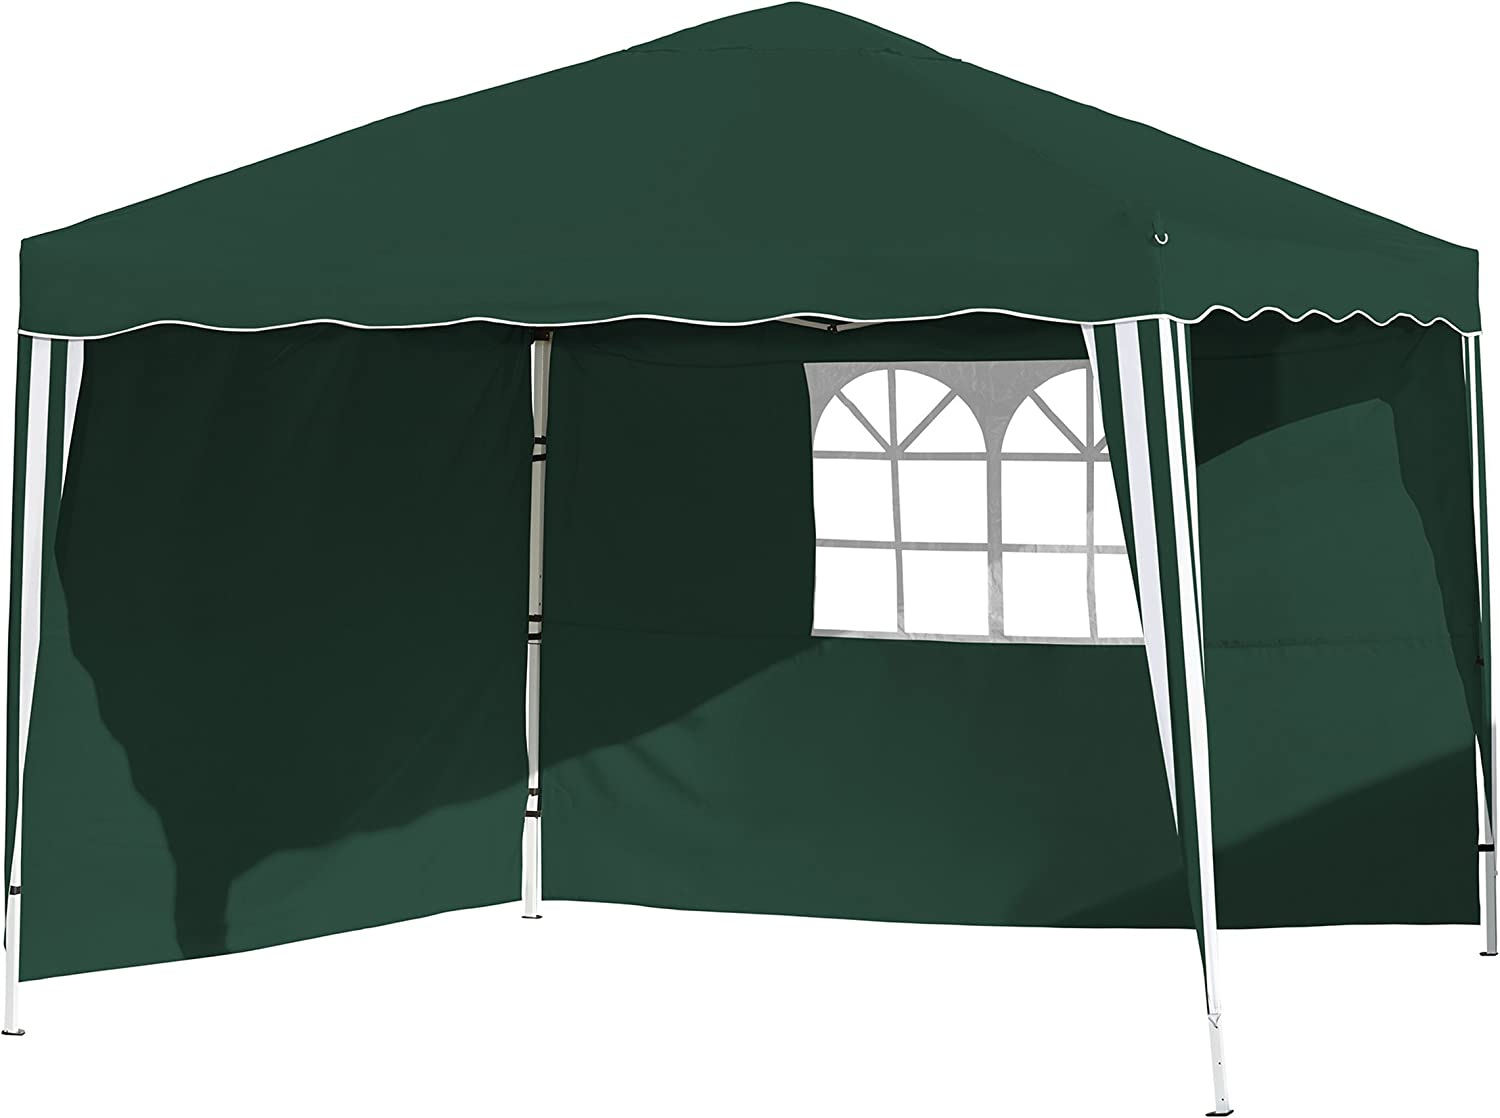 Vanage vg-8453 300 x 300 x 260 cm Gazebo – Verde: Amazon.es: Jardín